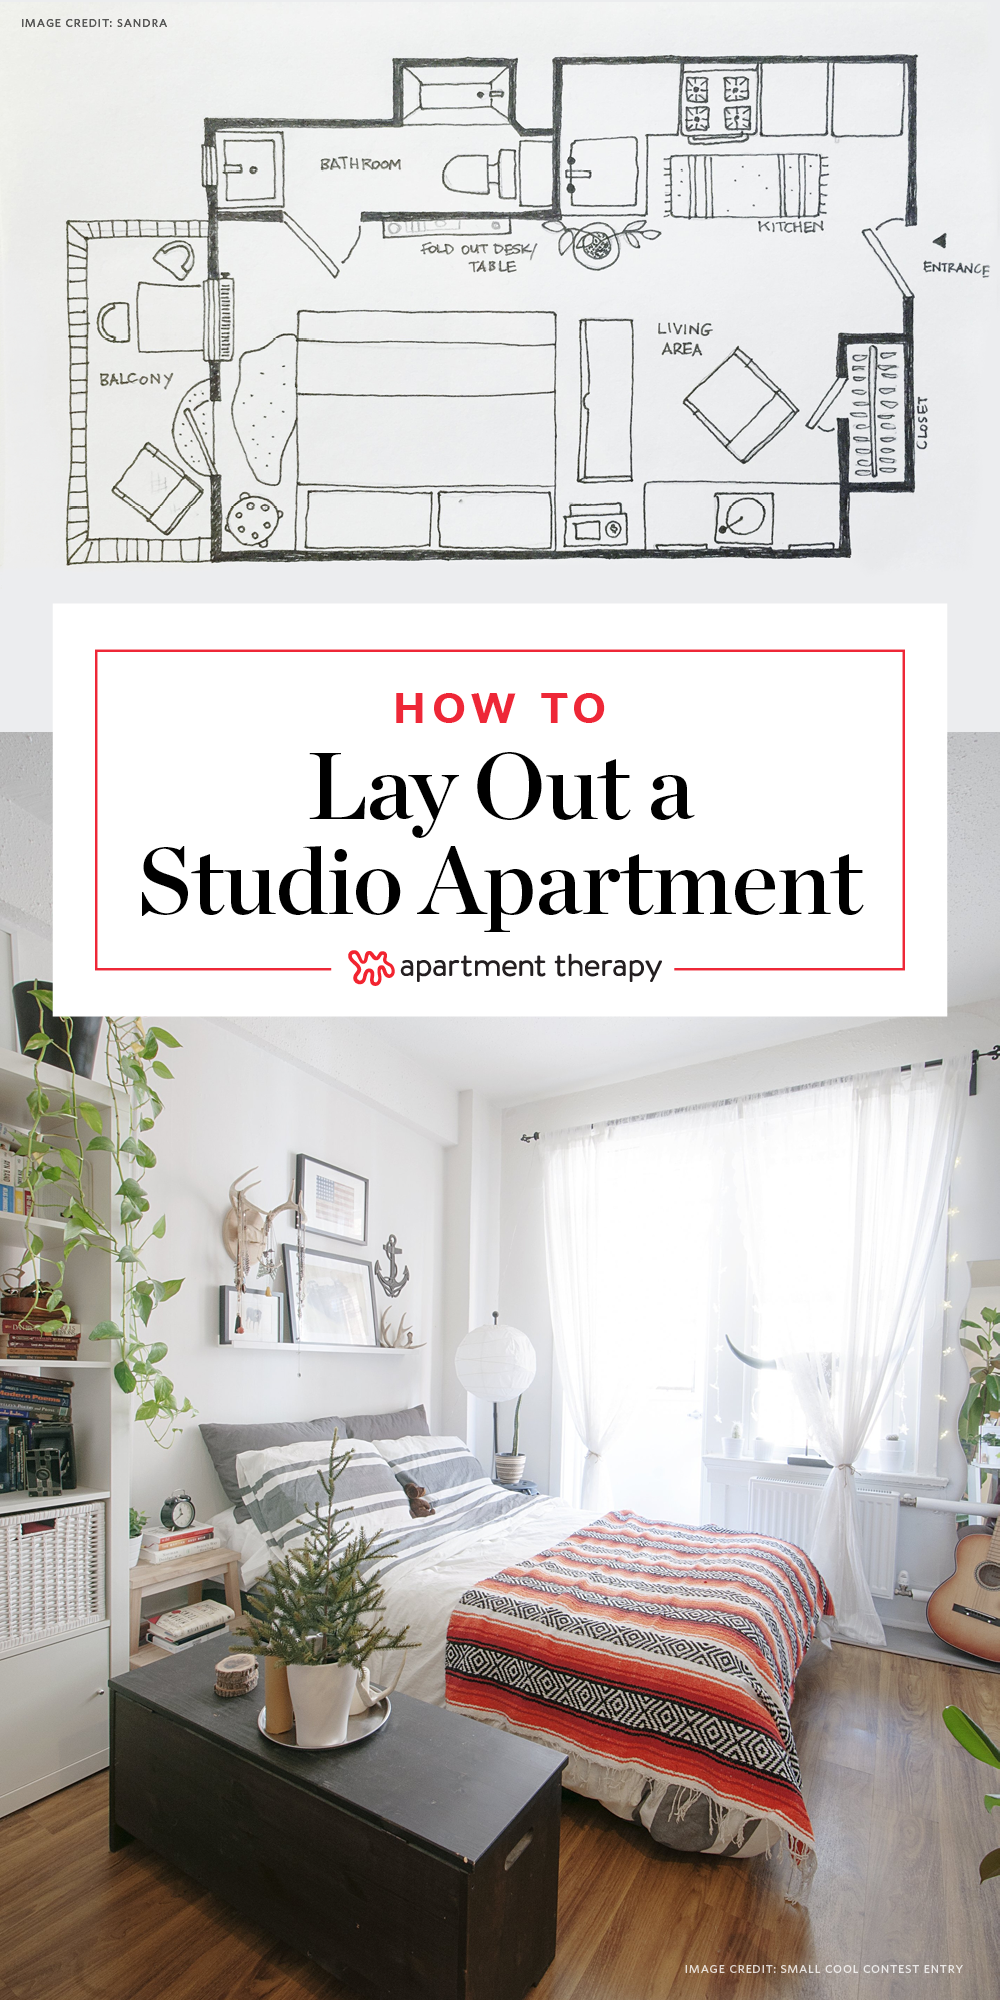 Perfect 5 Studio Apartment Layouts That Work | Arranging Your Furniture Is Hard  Enough When All The Furniture You Own Isnu0027t Jammed Into A Single Room.